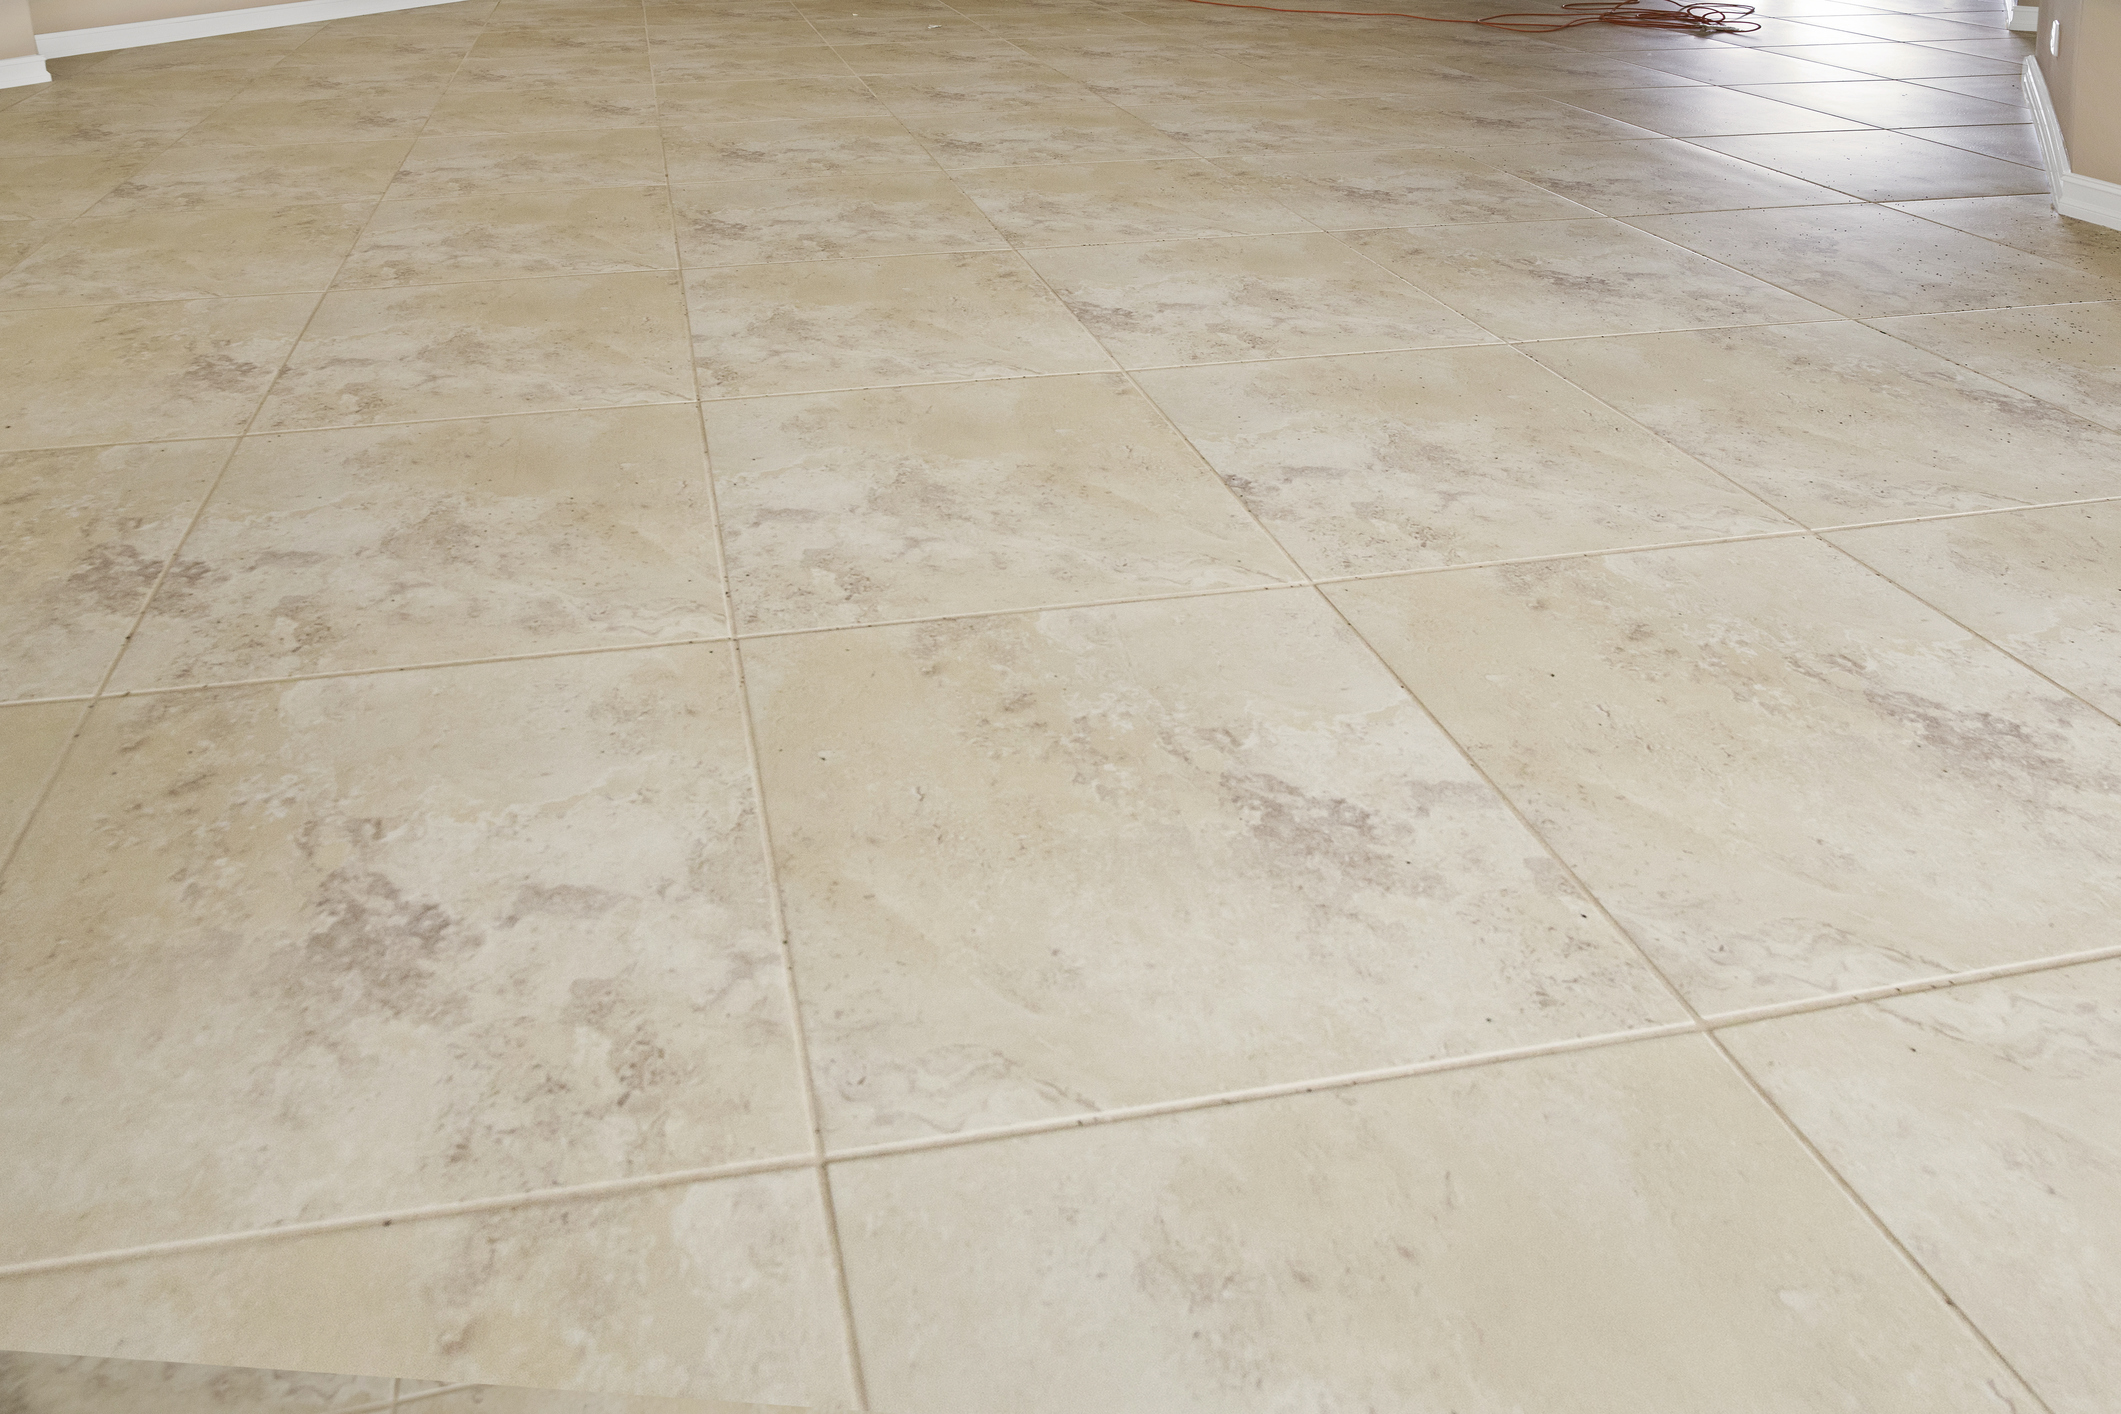 Tile and grout flooring cleaned by Columbia Carpet Cleaning.